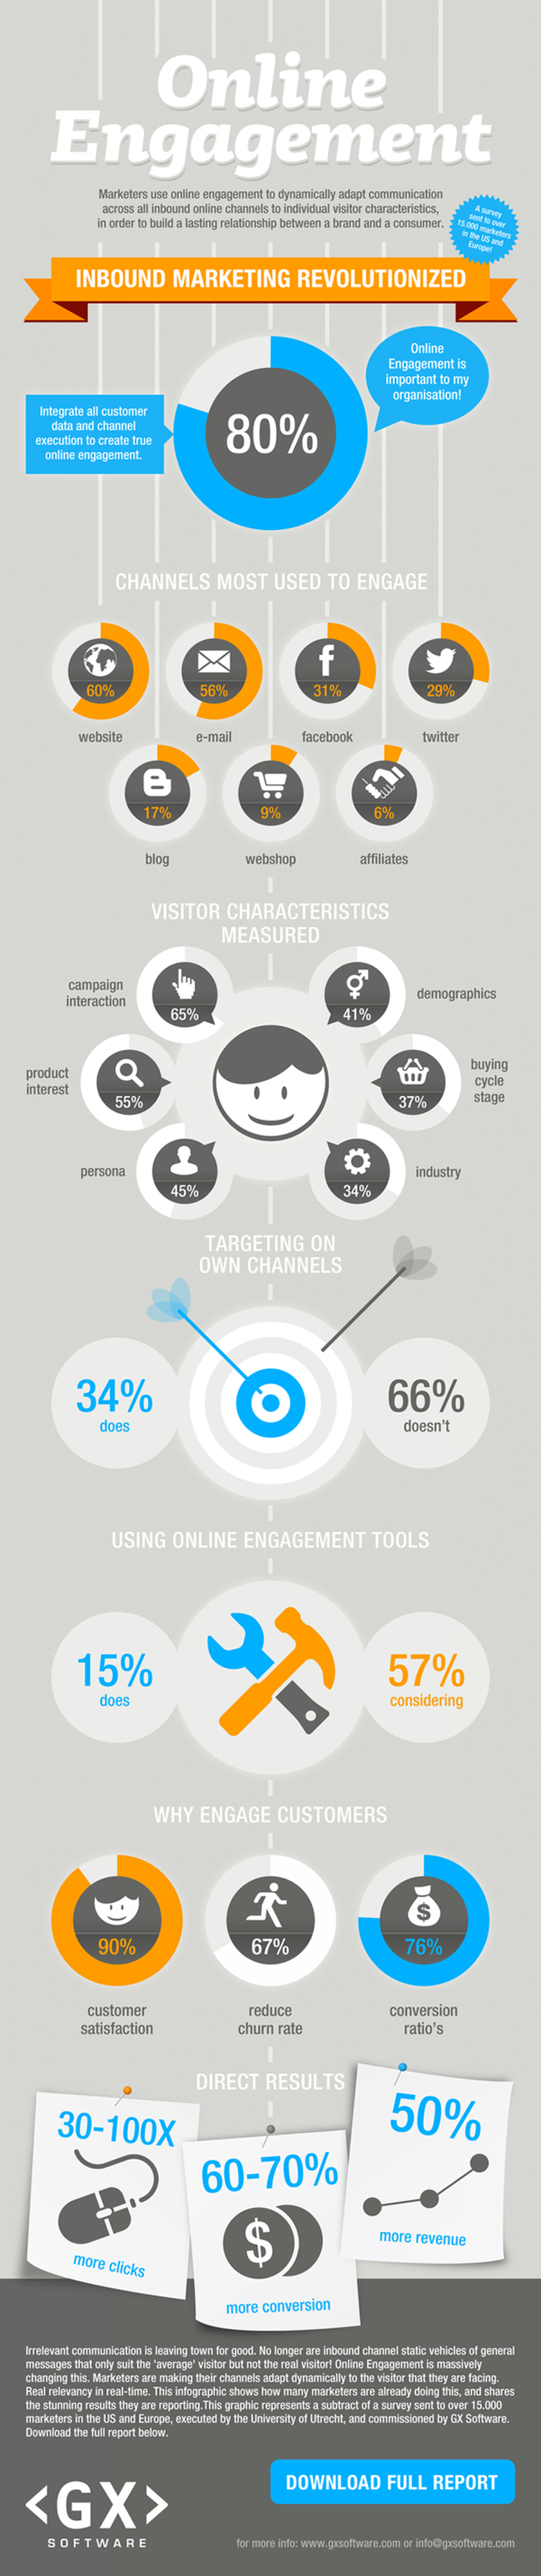 The state of Online Engagement 2012 Infographic